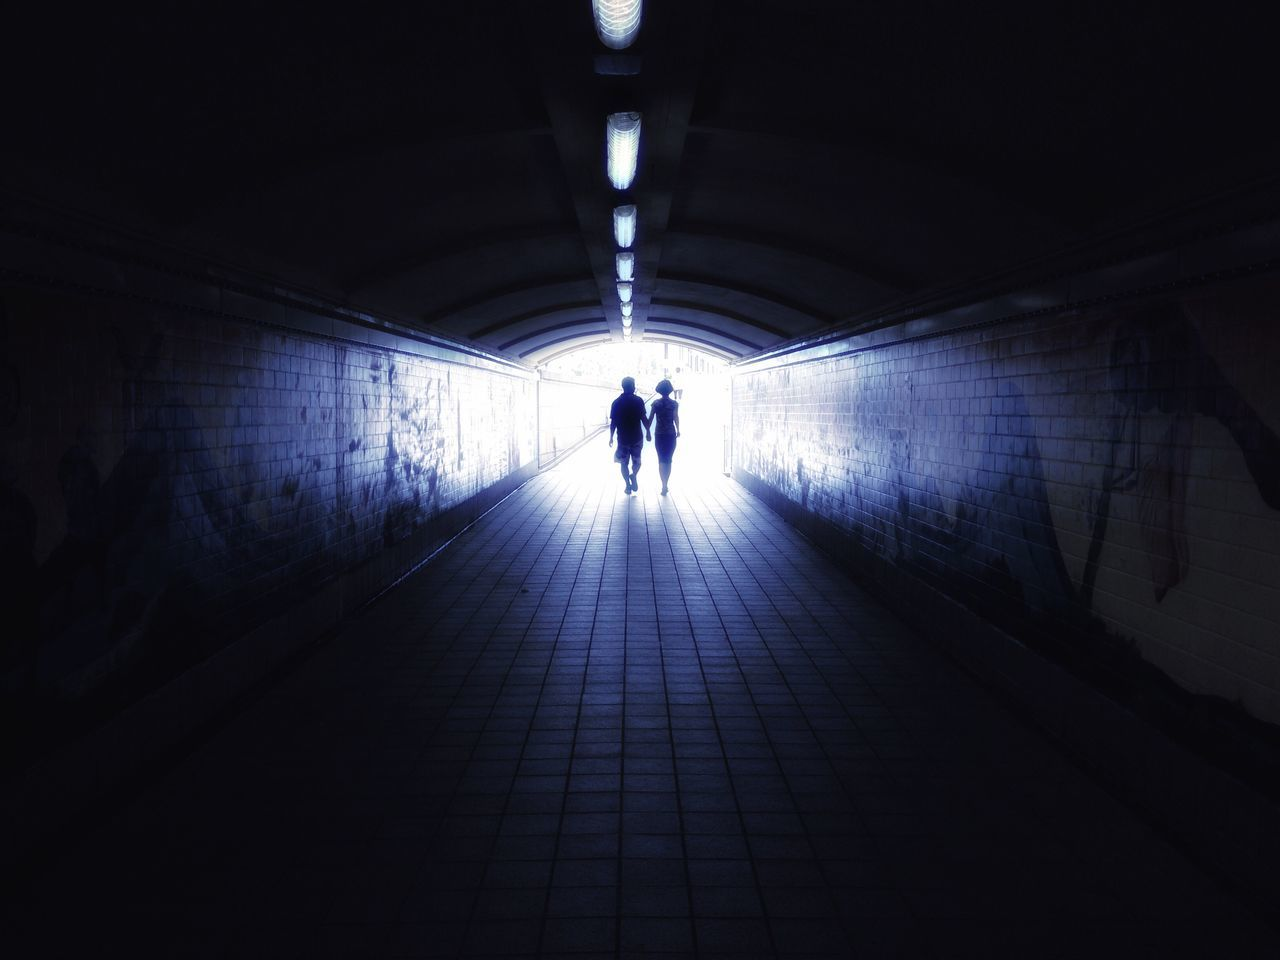 tunnel, real people, indoors, the way forward, illuminated, light at the end of the tunnel, full length, rear view, lifestyles, leisure activity, silhouette, architecture, built structure, two people, men, togetherness, women, day, adult, people